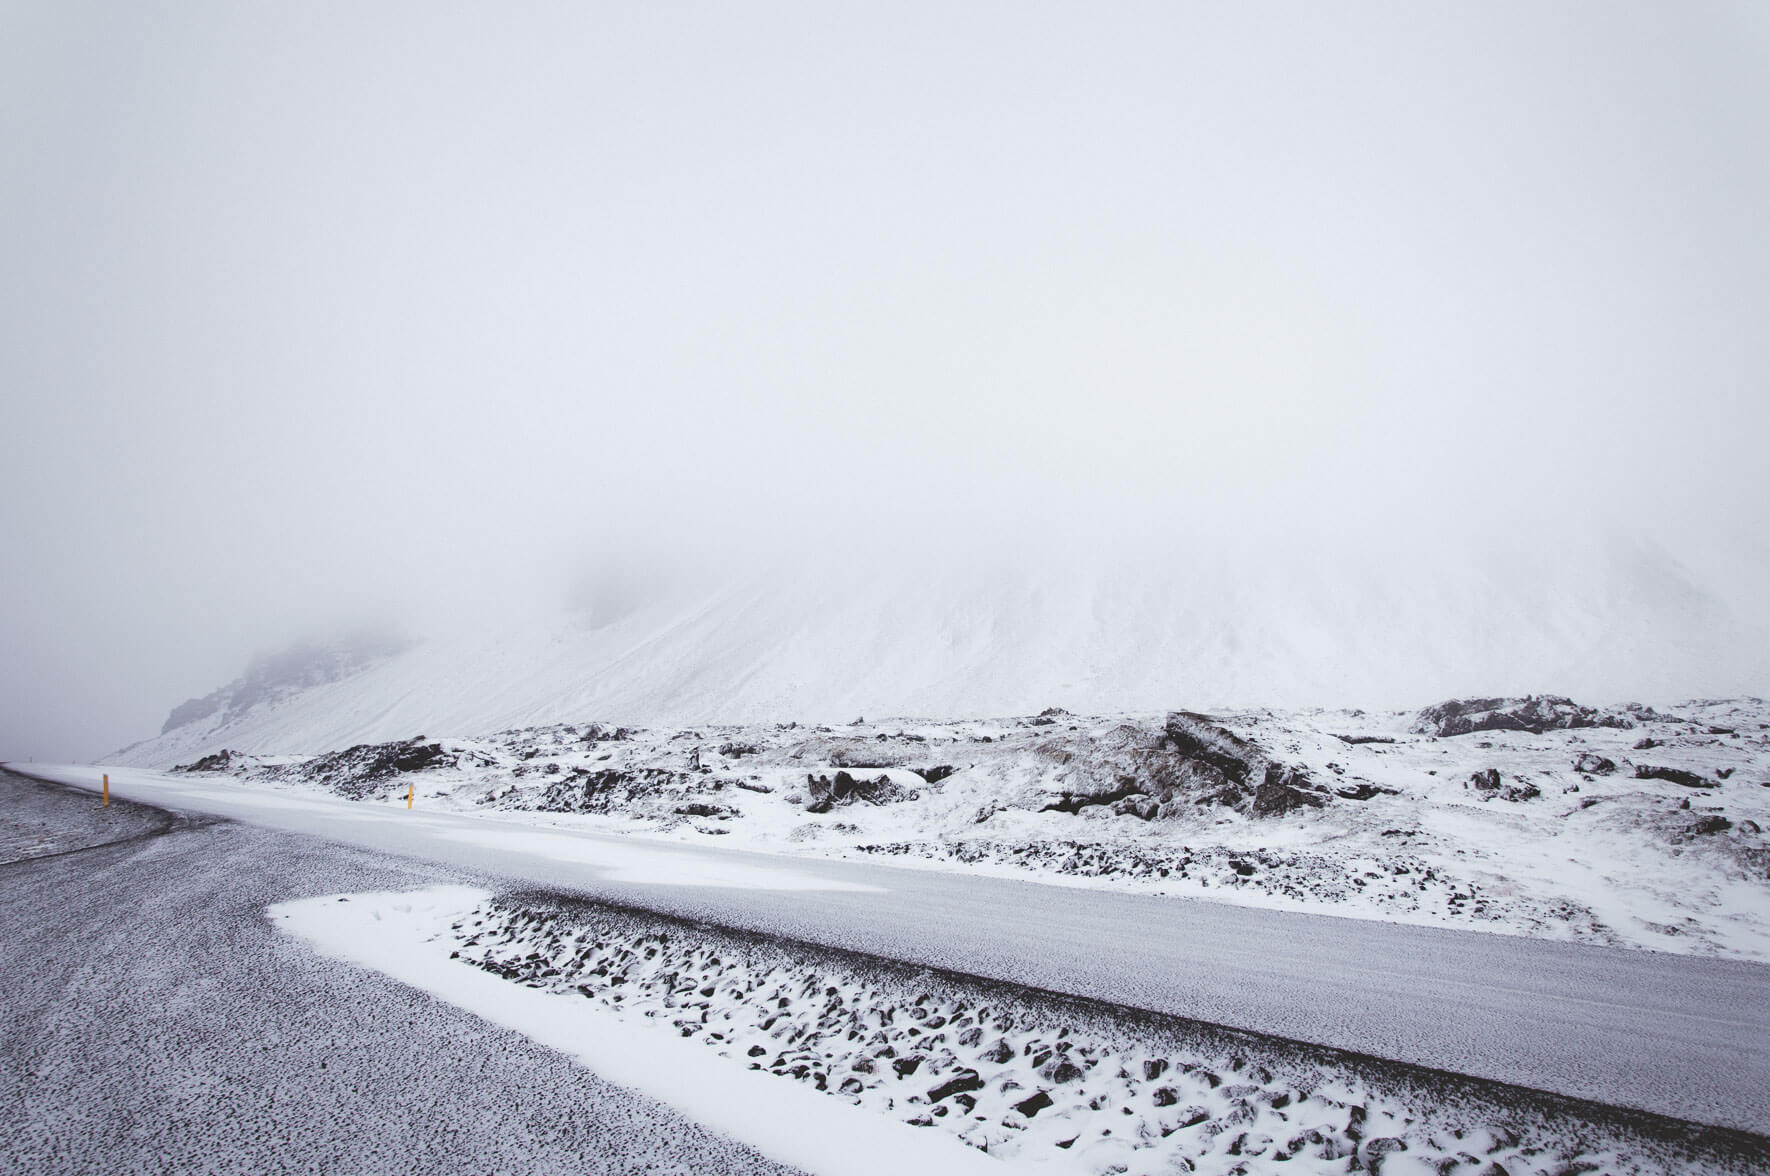 Snowy road at the foot of the Snæfellsjökull glacier in Iceland